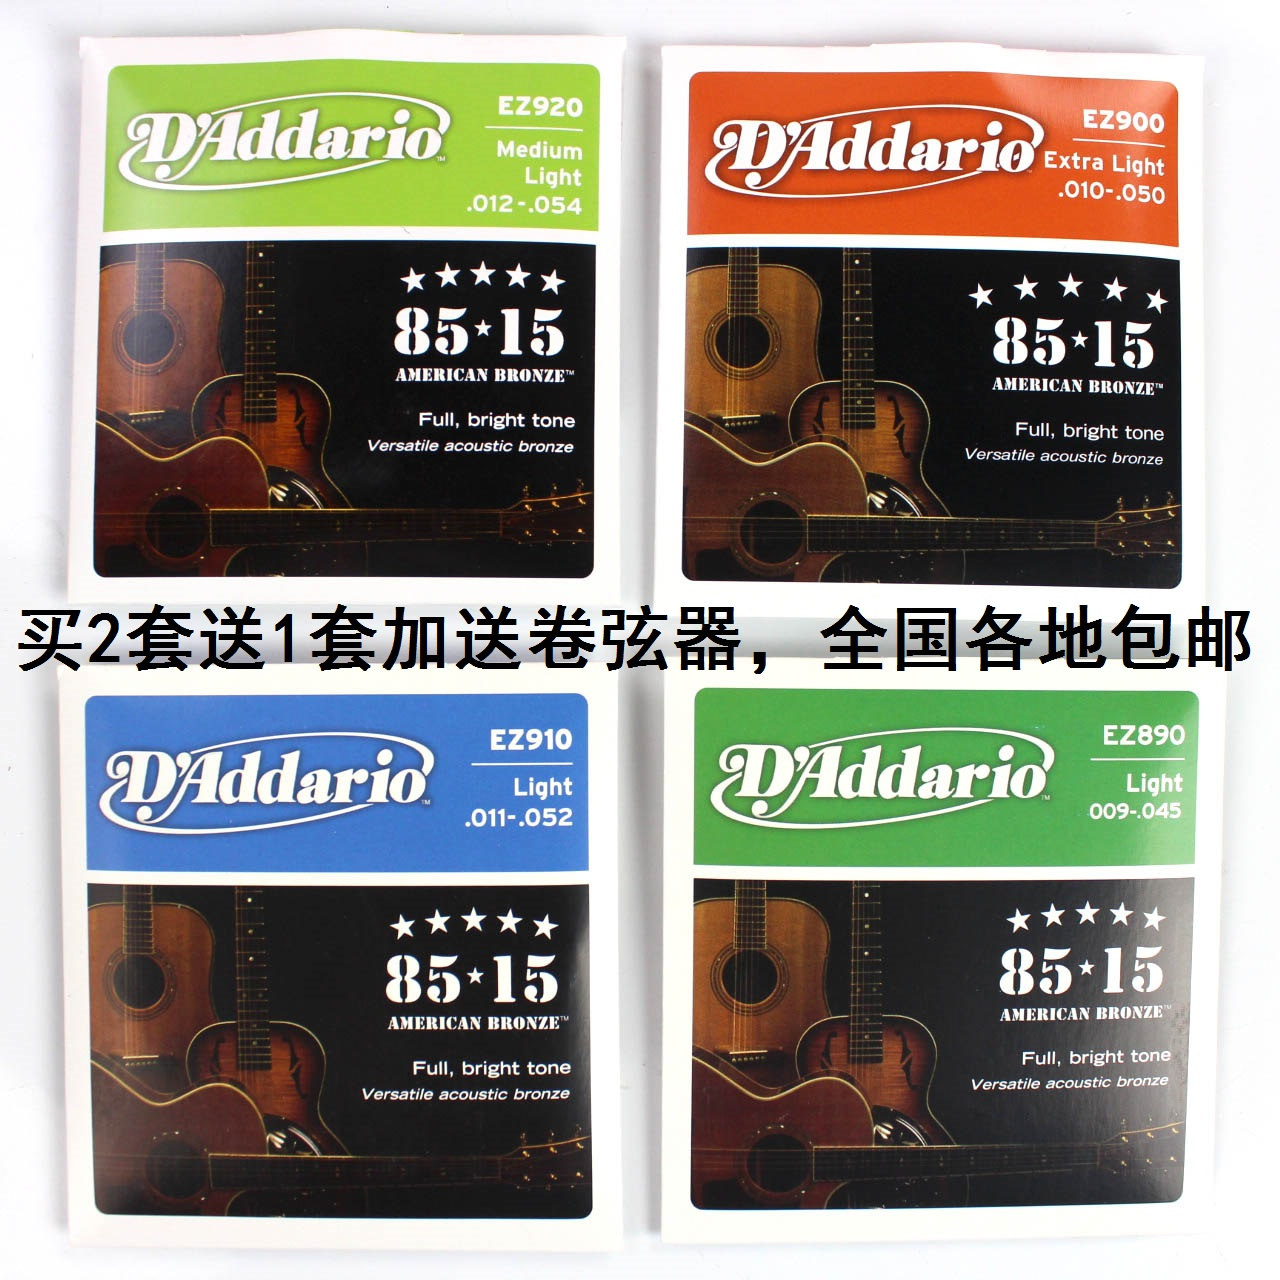 D ' Addario ballad acoustic guitar strings EZ890 diameter of 900 910 920 strings 009 010 011 012